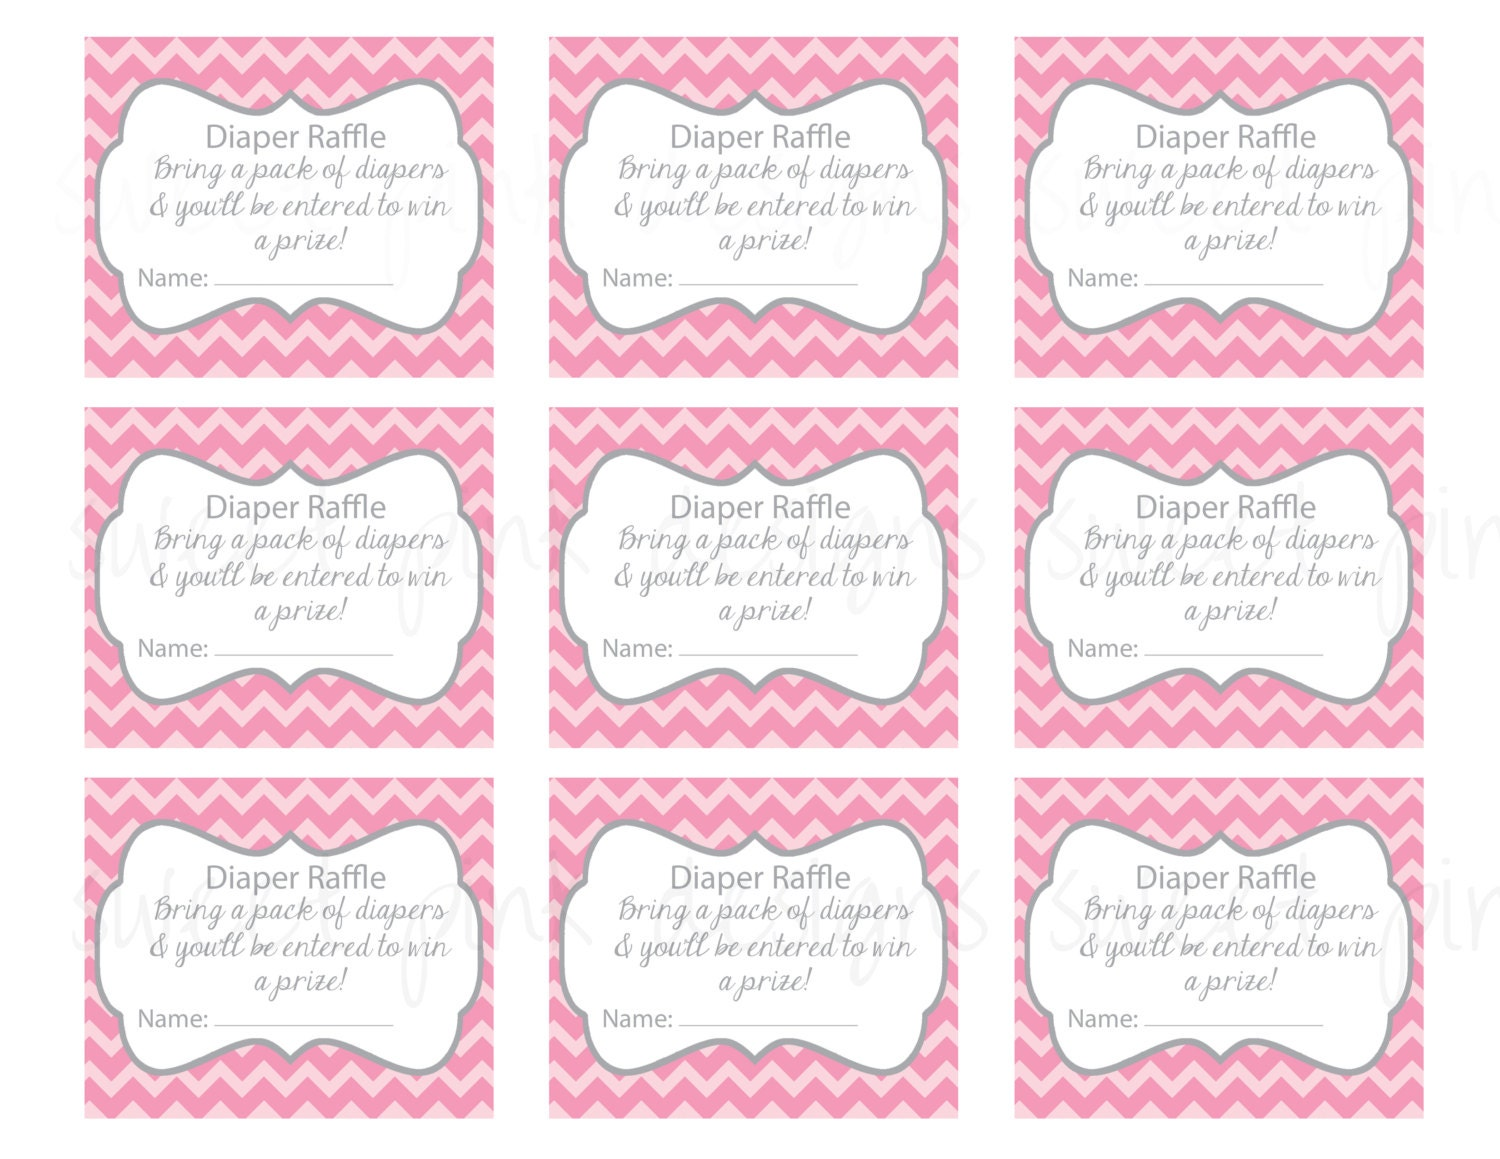 Diaper Raffle Ticket Grey And Pink Chevron